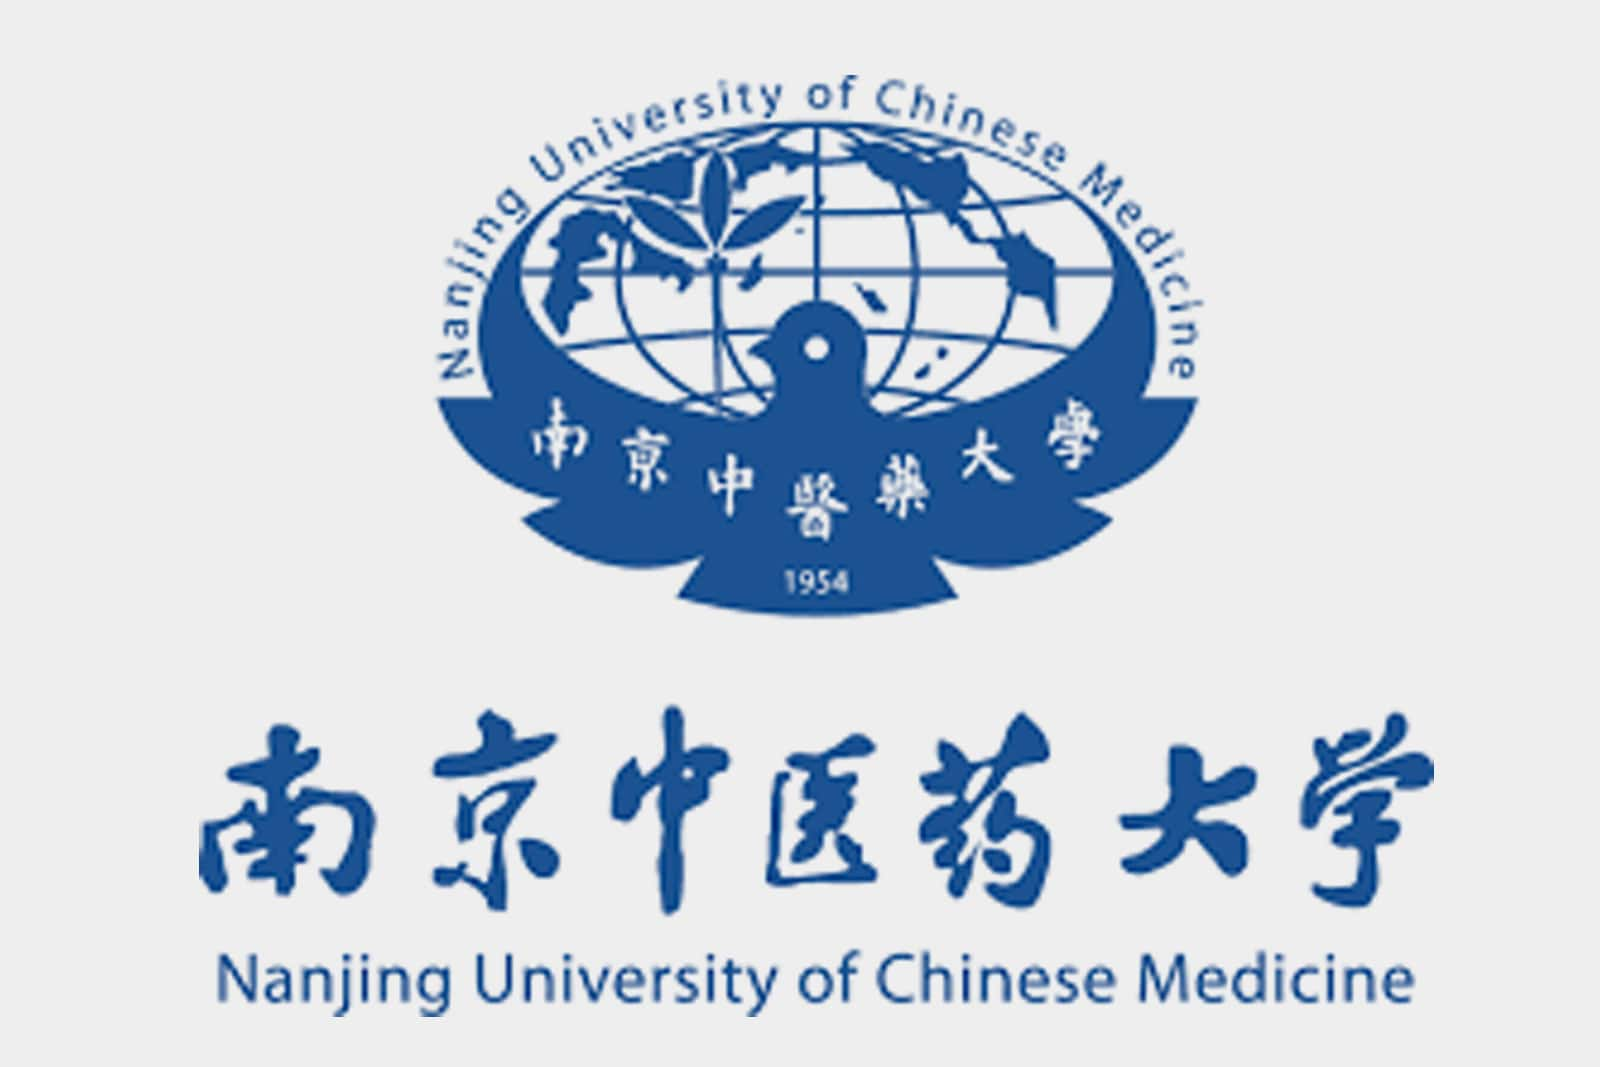 Master PHD TM opleiding. Goedgekeurd door Nanjing University of Chinese Medicine- Shenzhou Open University of TCM